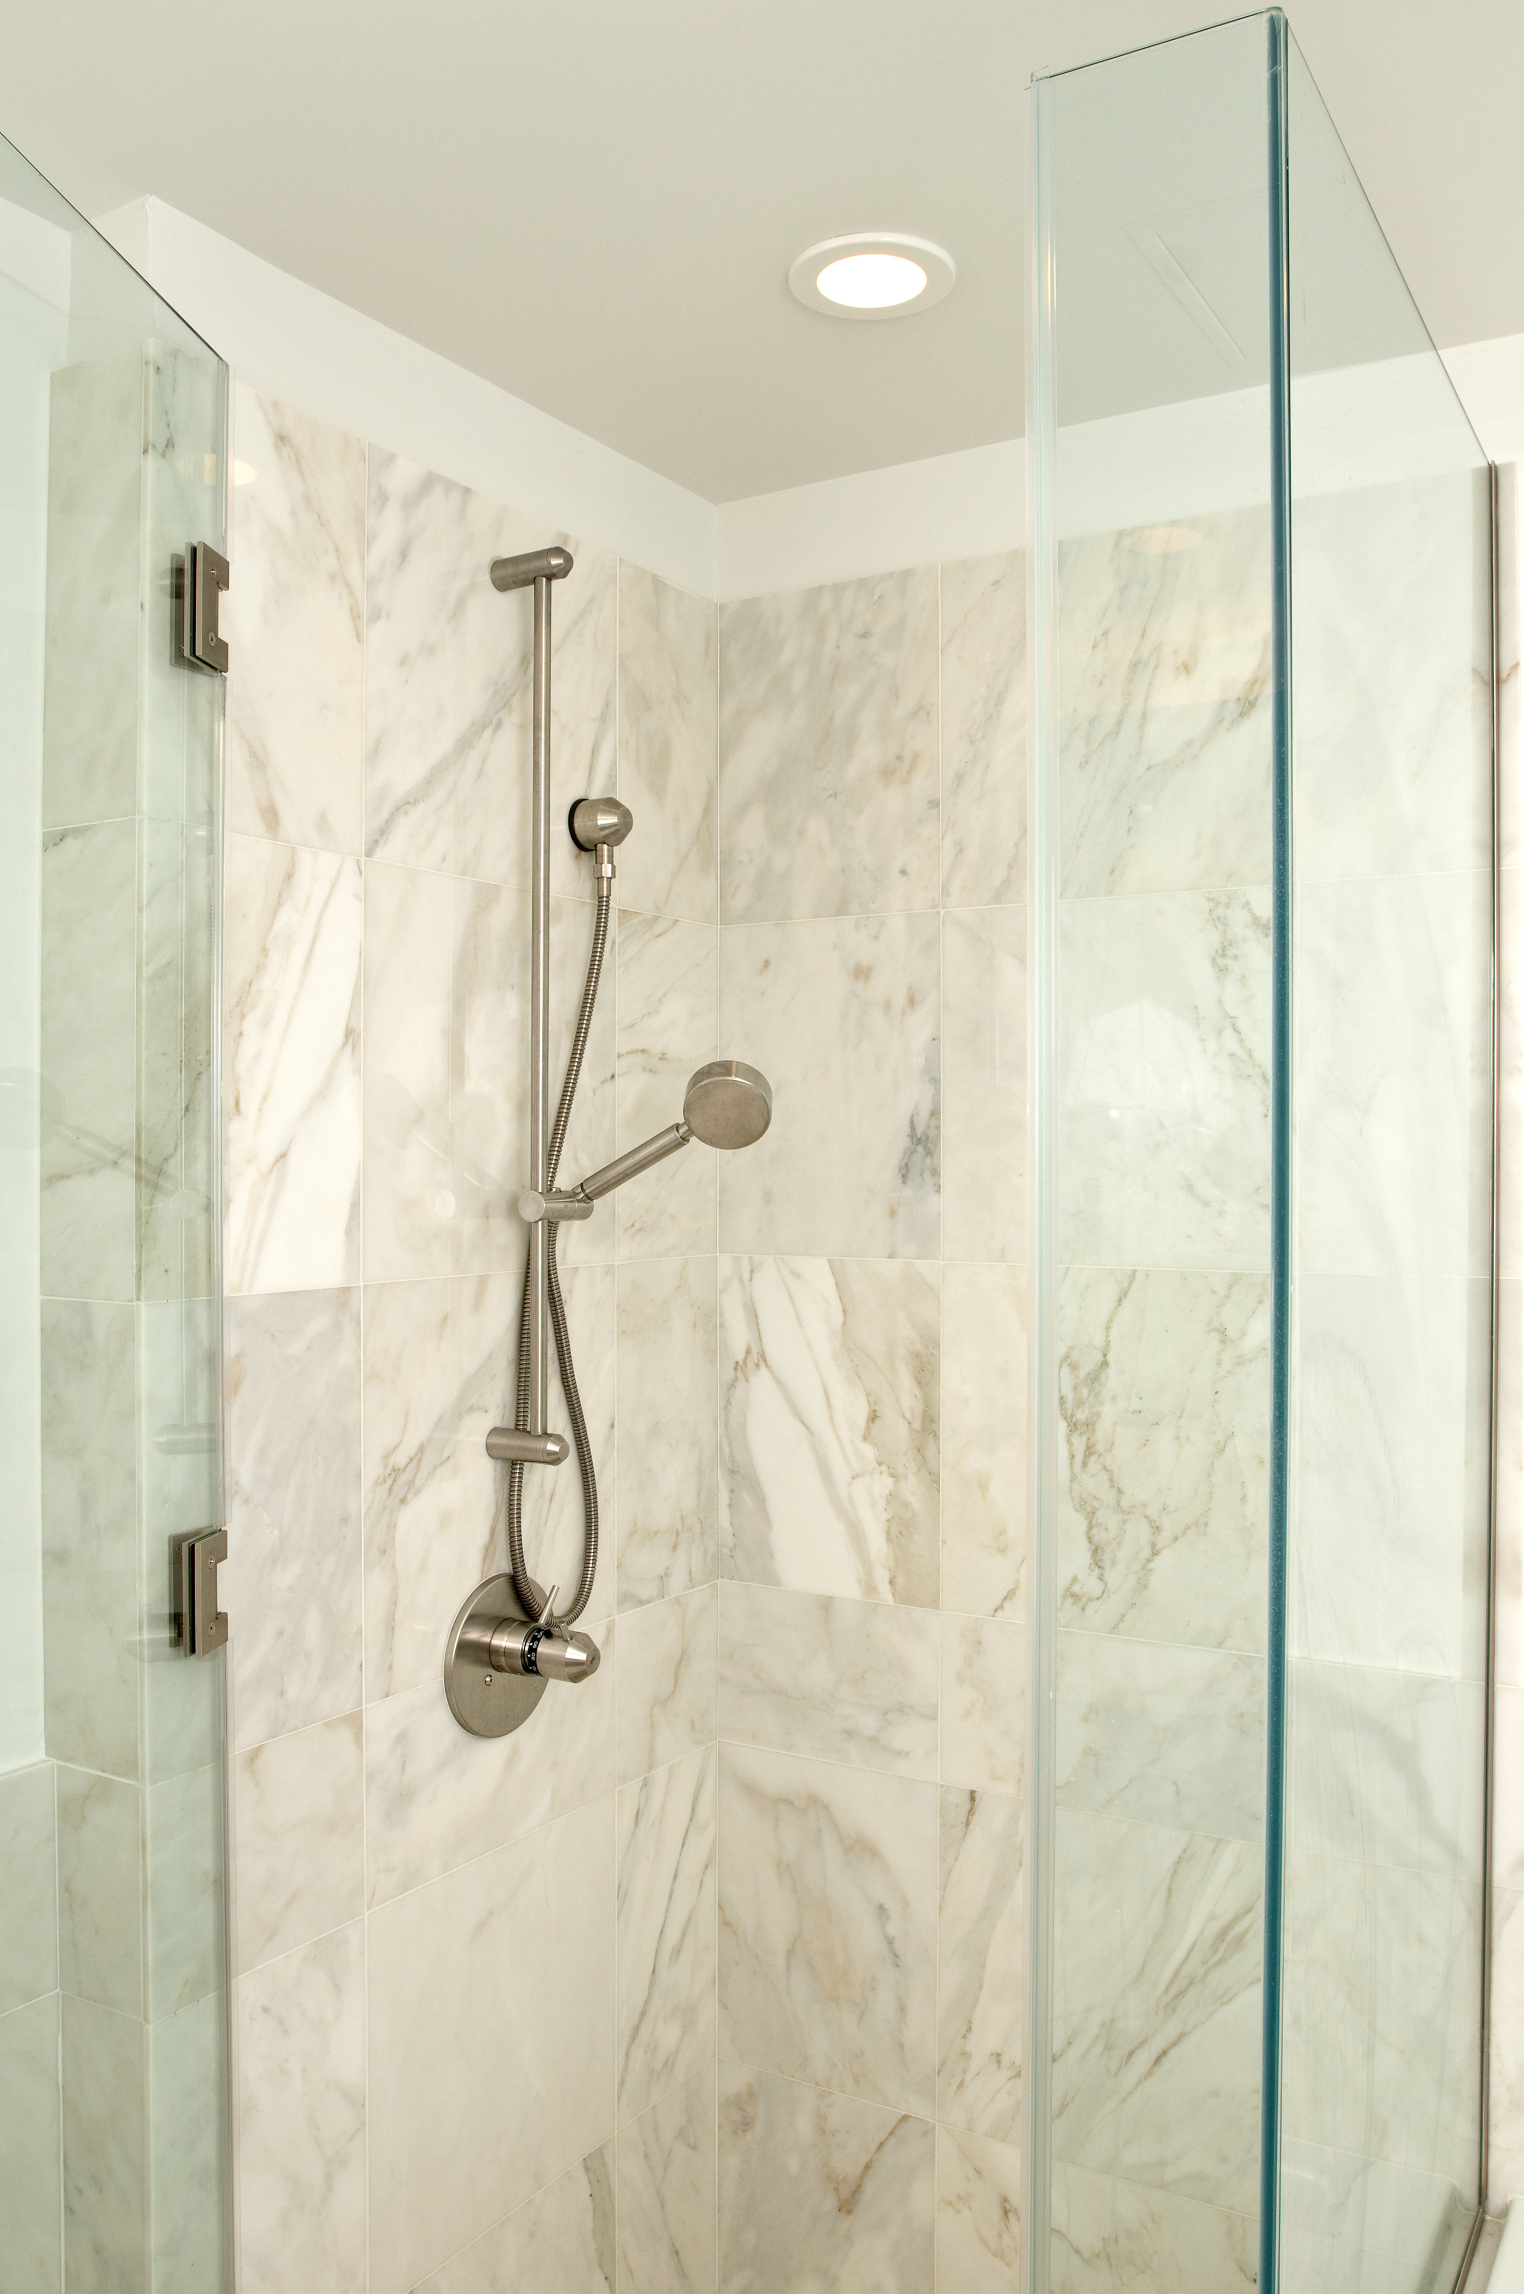 How To Hang Shower Curtains For A Garden Tub